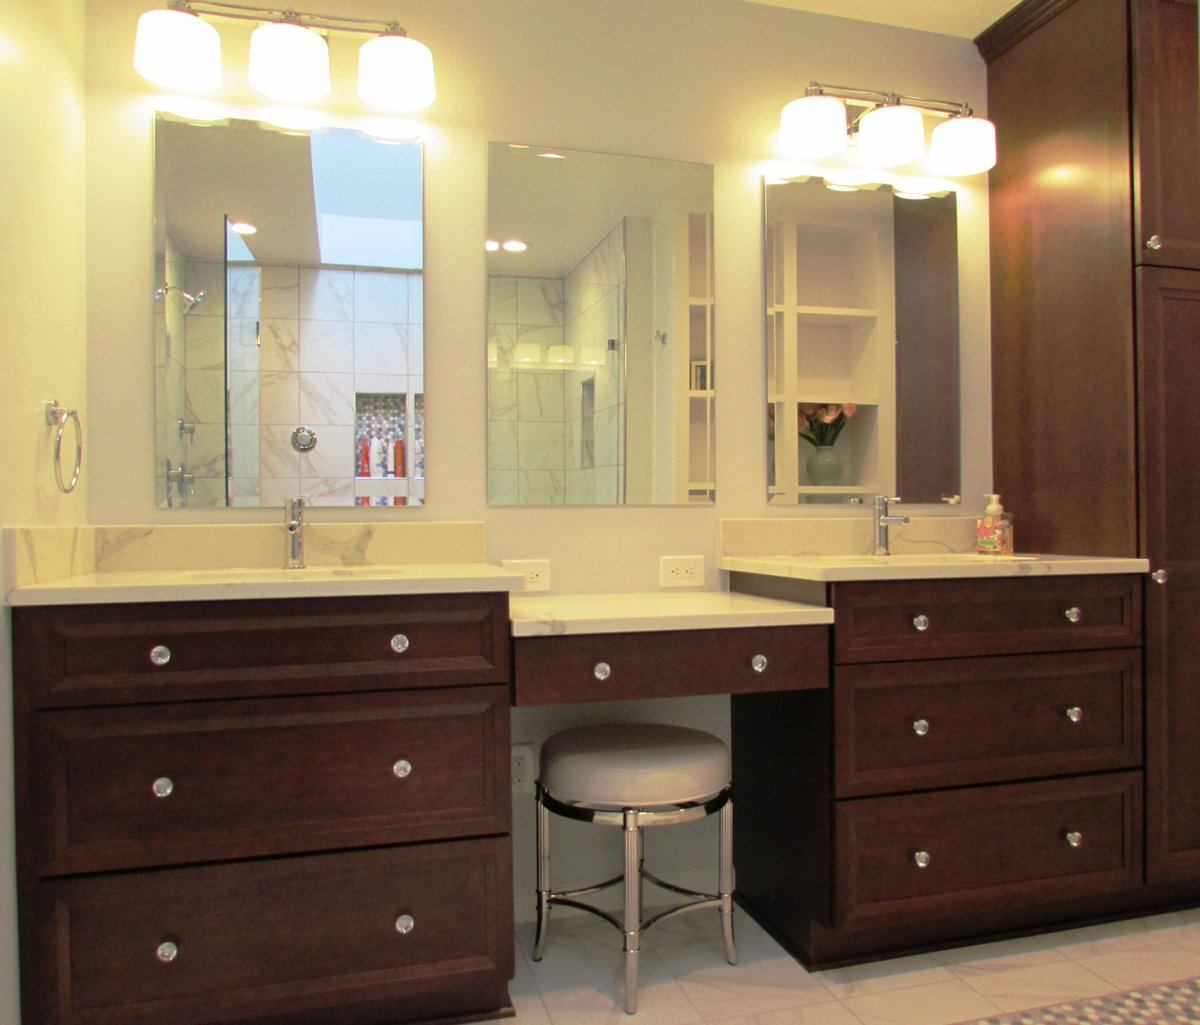 Talon Construction On Twitter Beautifully Designed Master Bathroom - Bathroom remodeling gaithersburg md